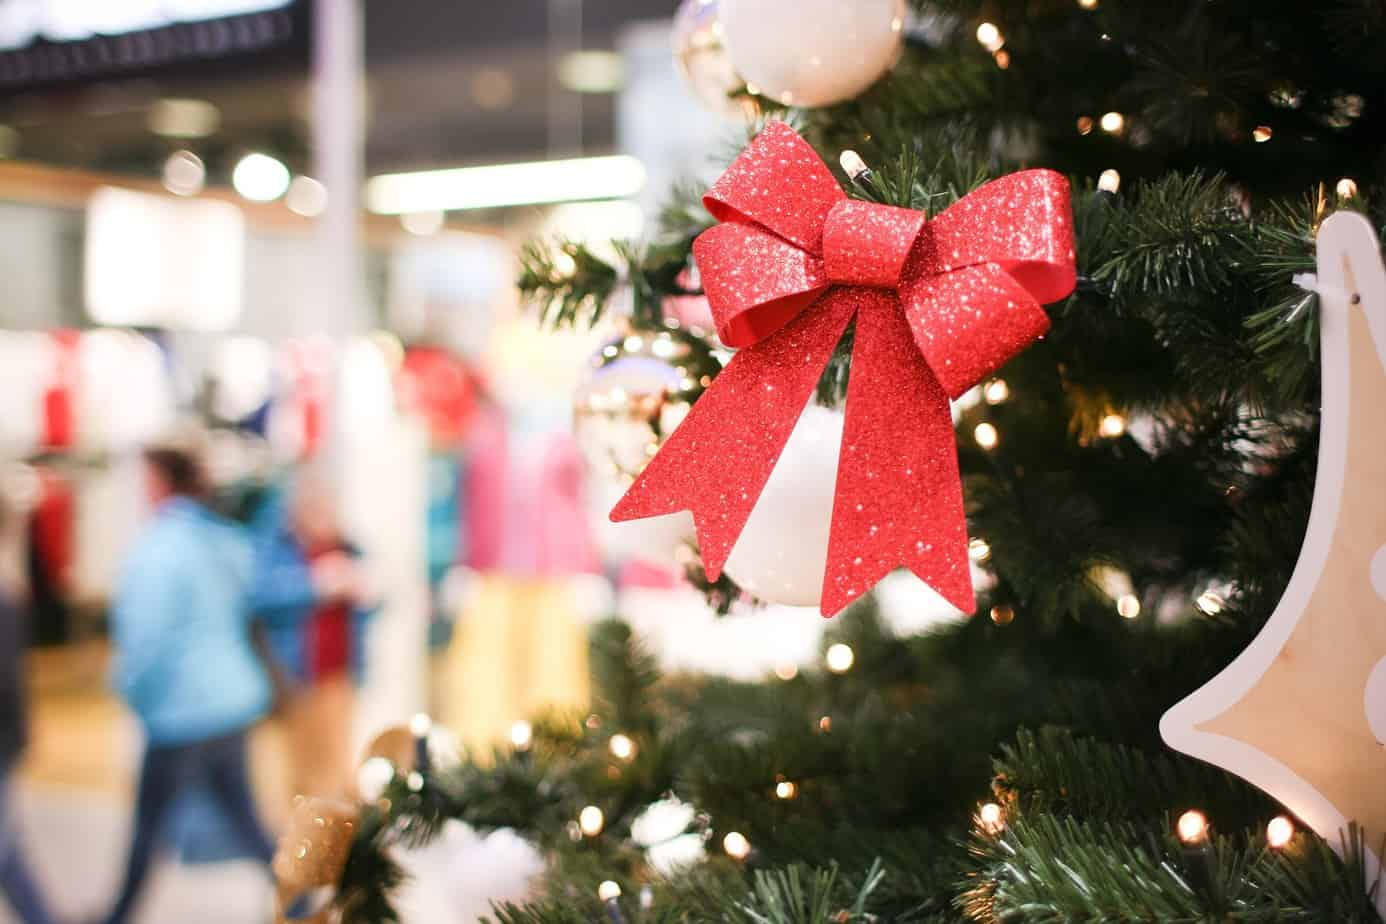 another christmas tree detail in shopping mall picjumbo com